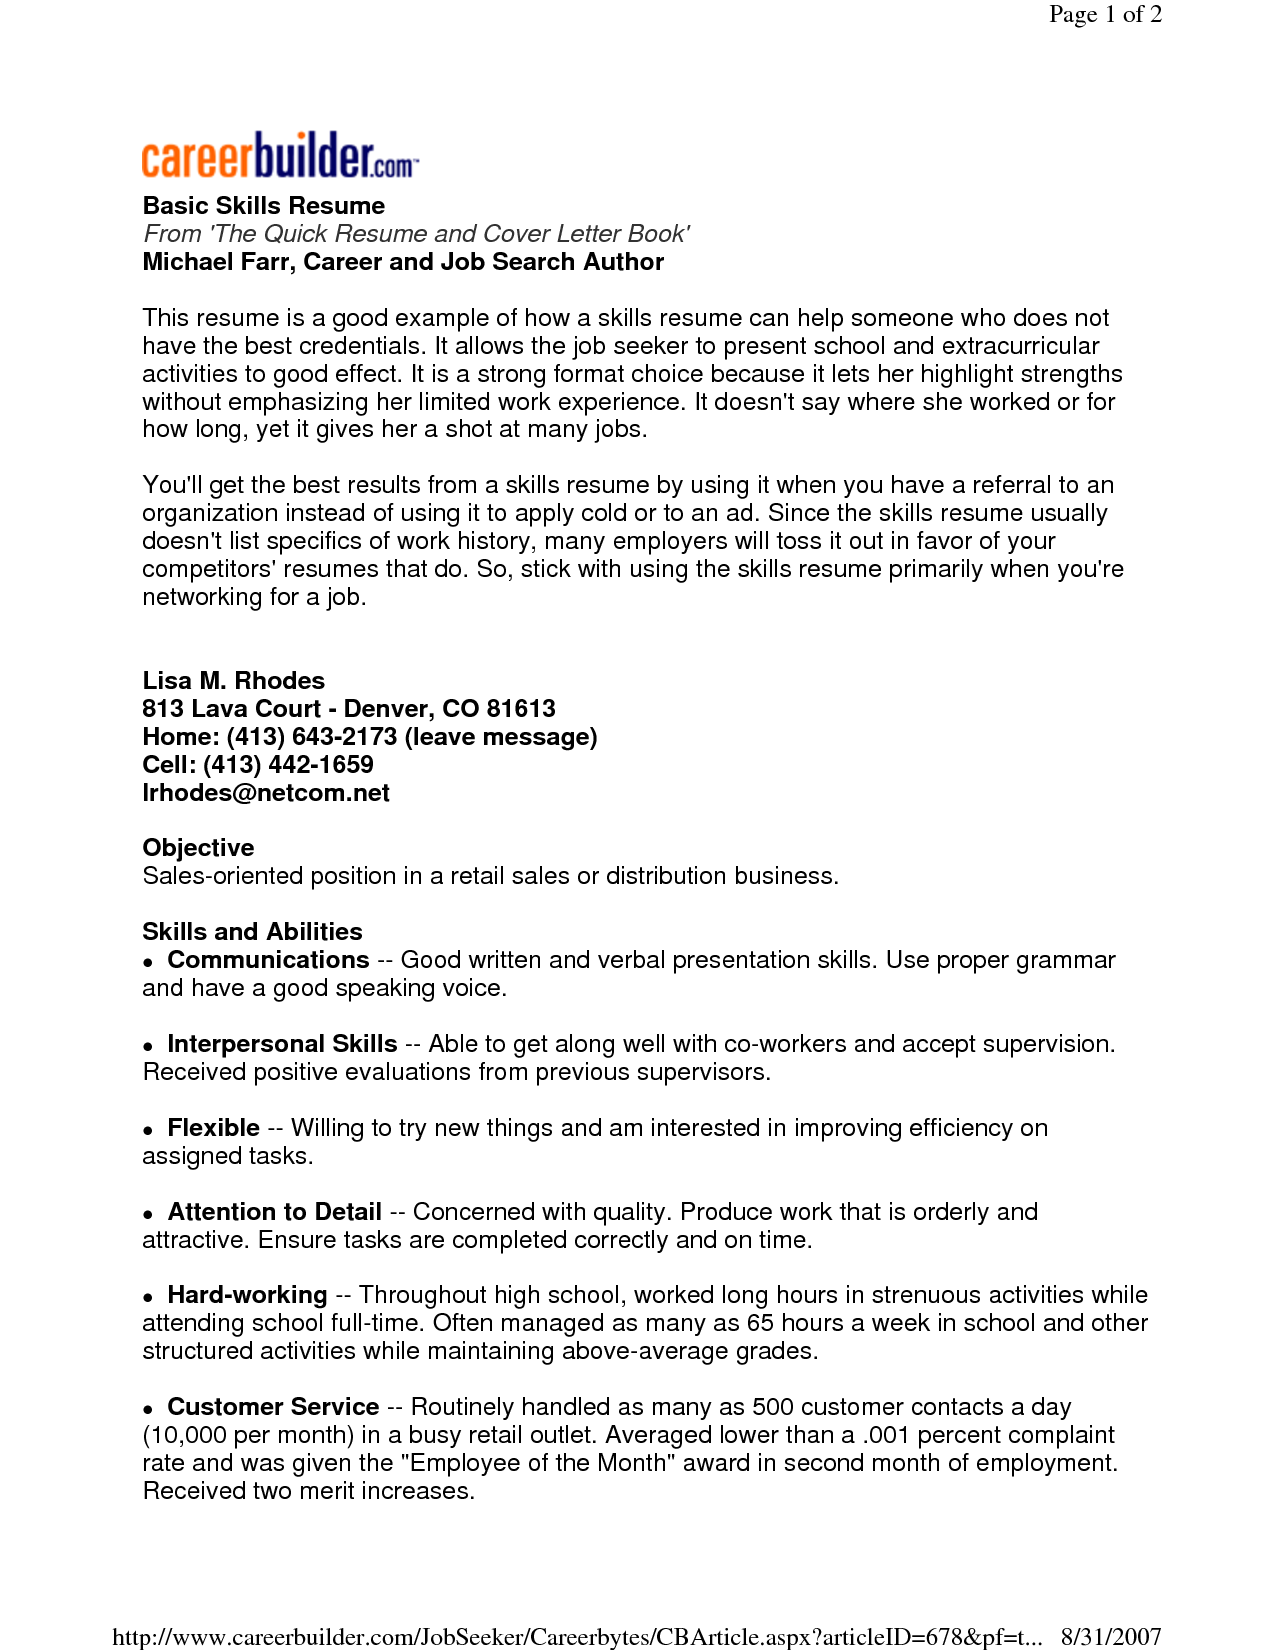 Skill Resume Template Delectable Find Here The Sample Resume That Best Fits Your Profile In Order